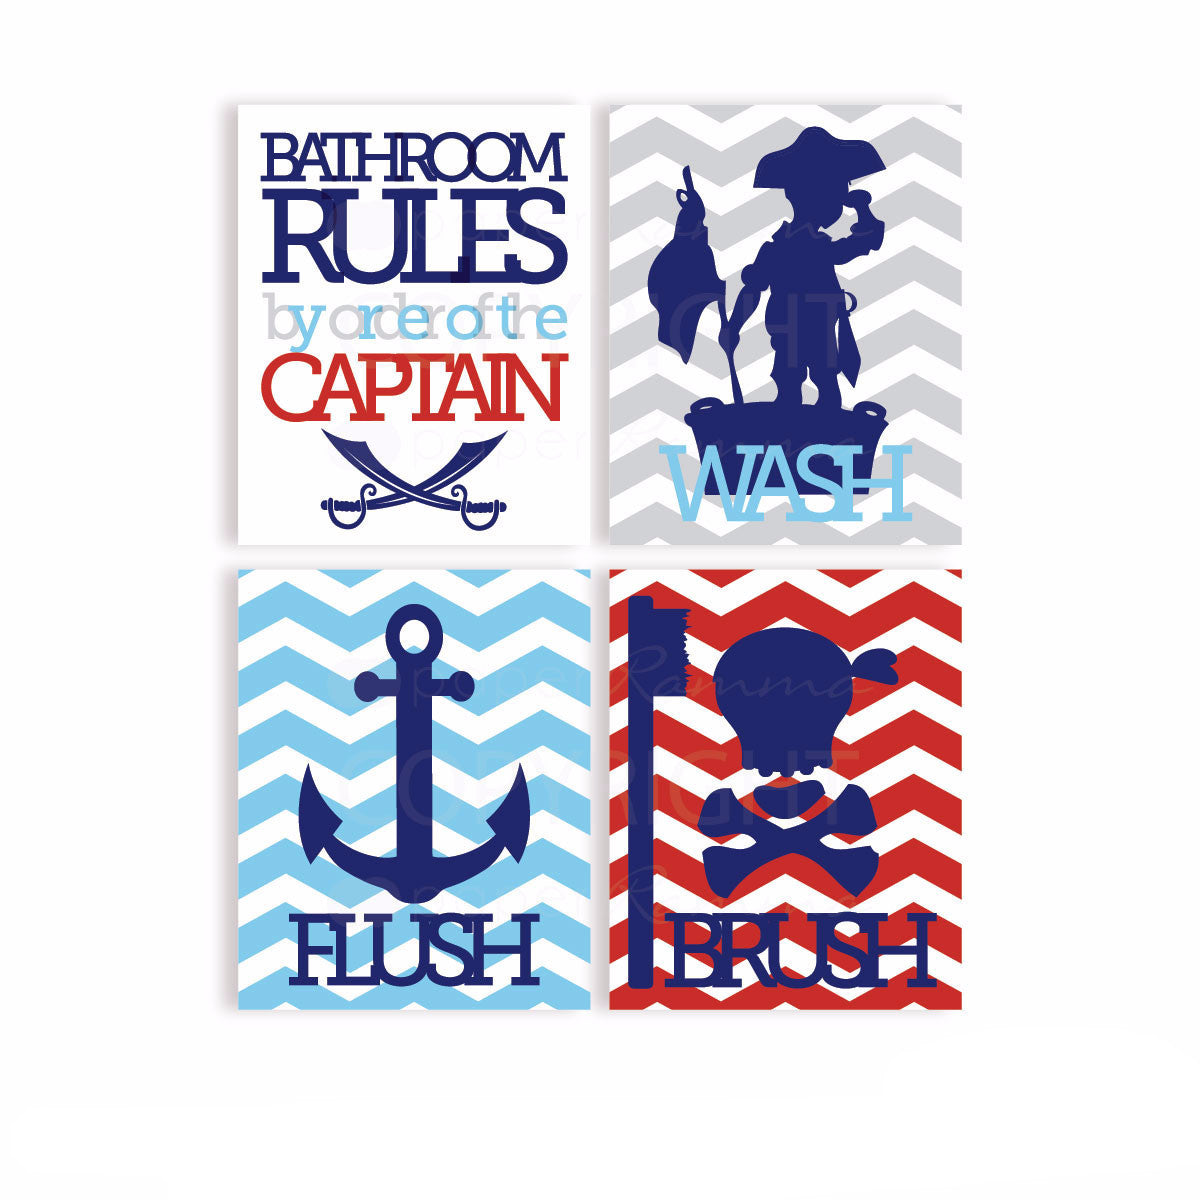 Pirate Bathroom Rules Decor</br> <small> <i> Nursery & Kids Art Print Set </i> </br> <small> available in 5x7 - 20x30 </small>